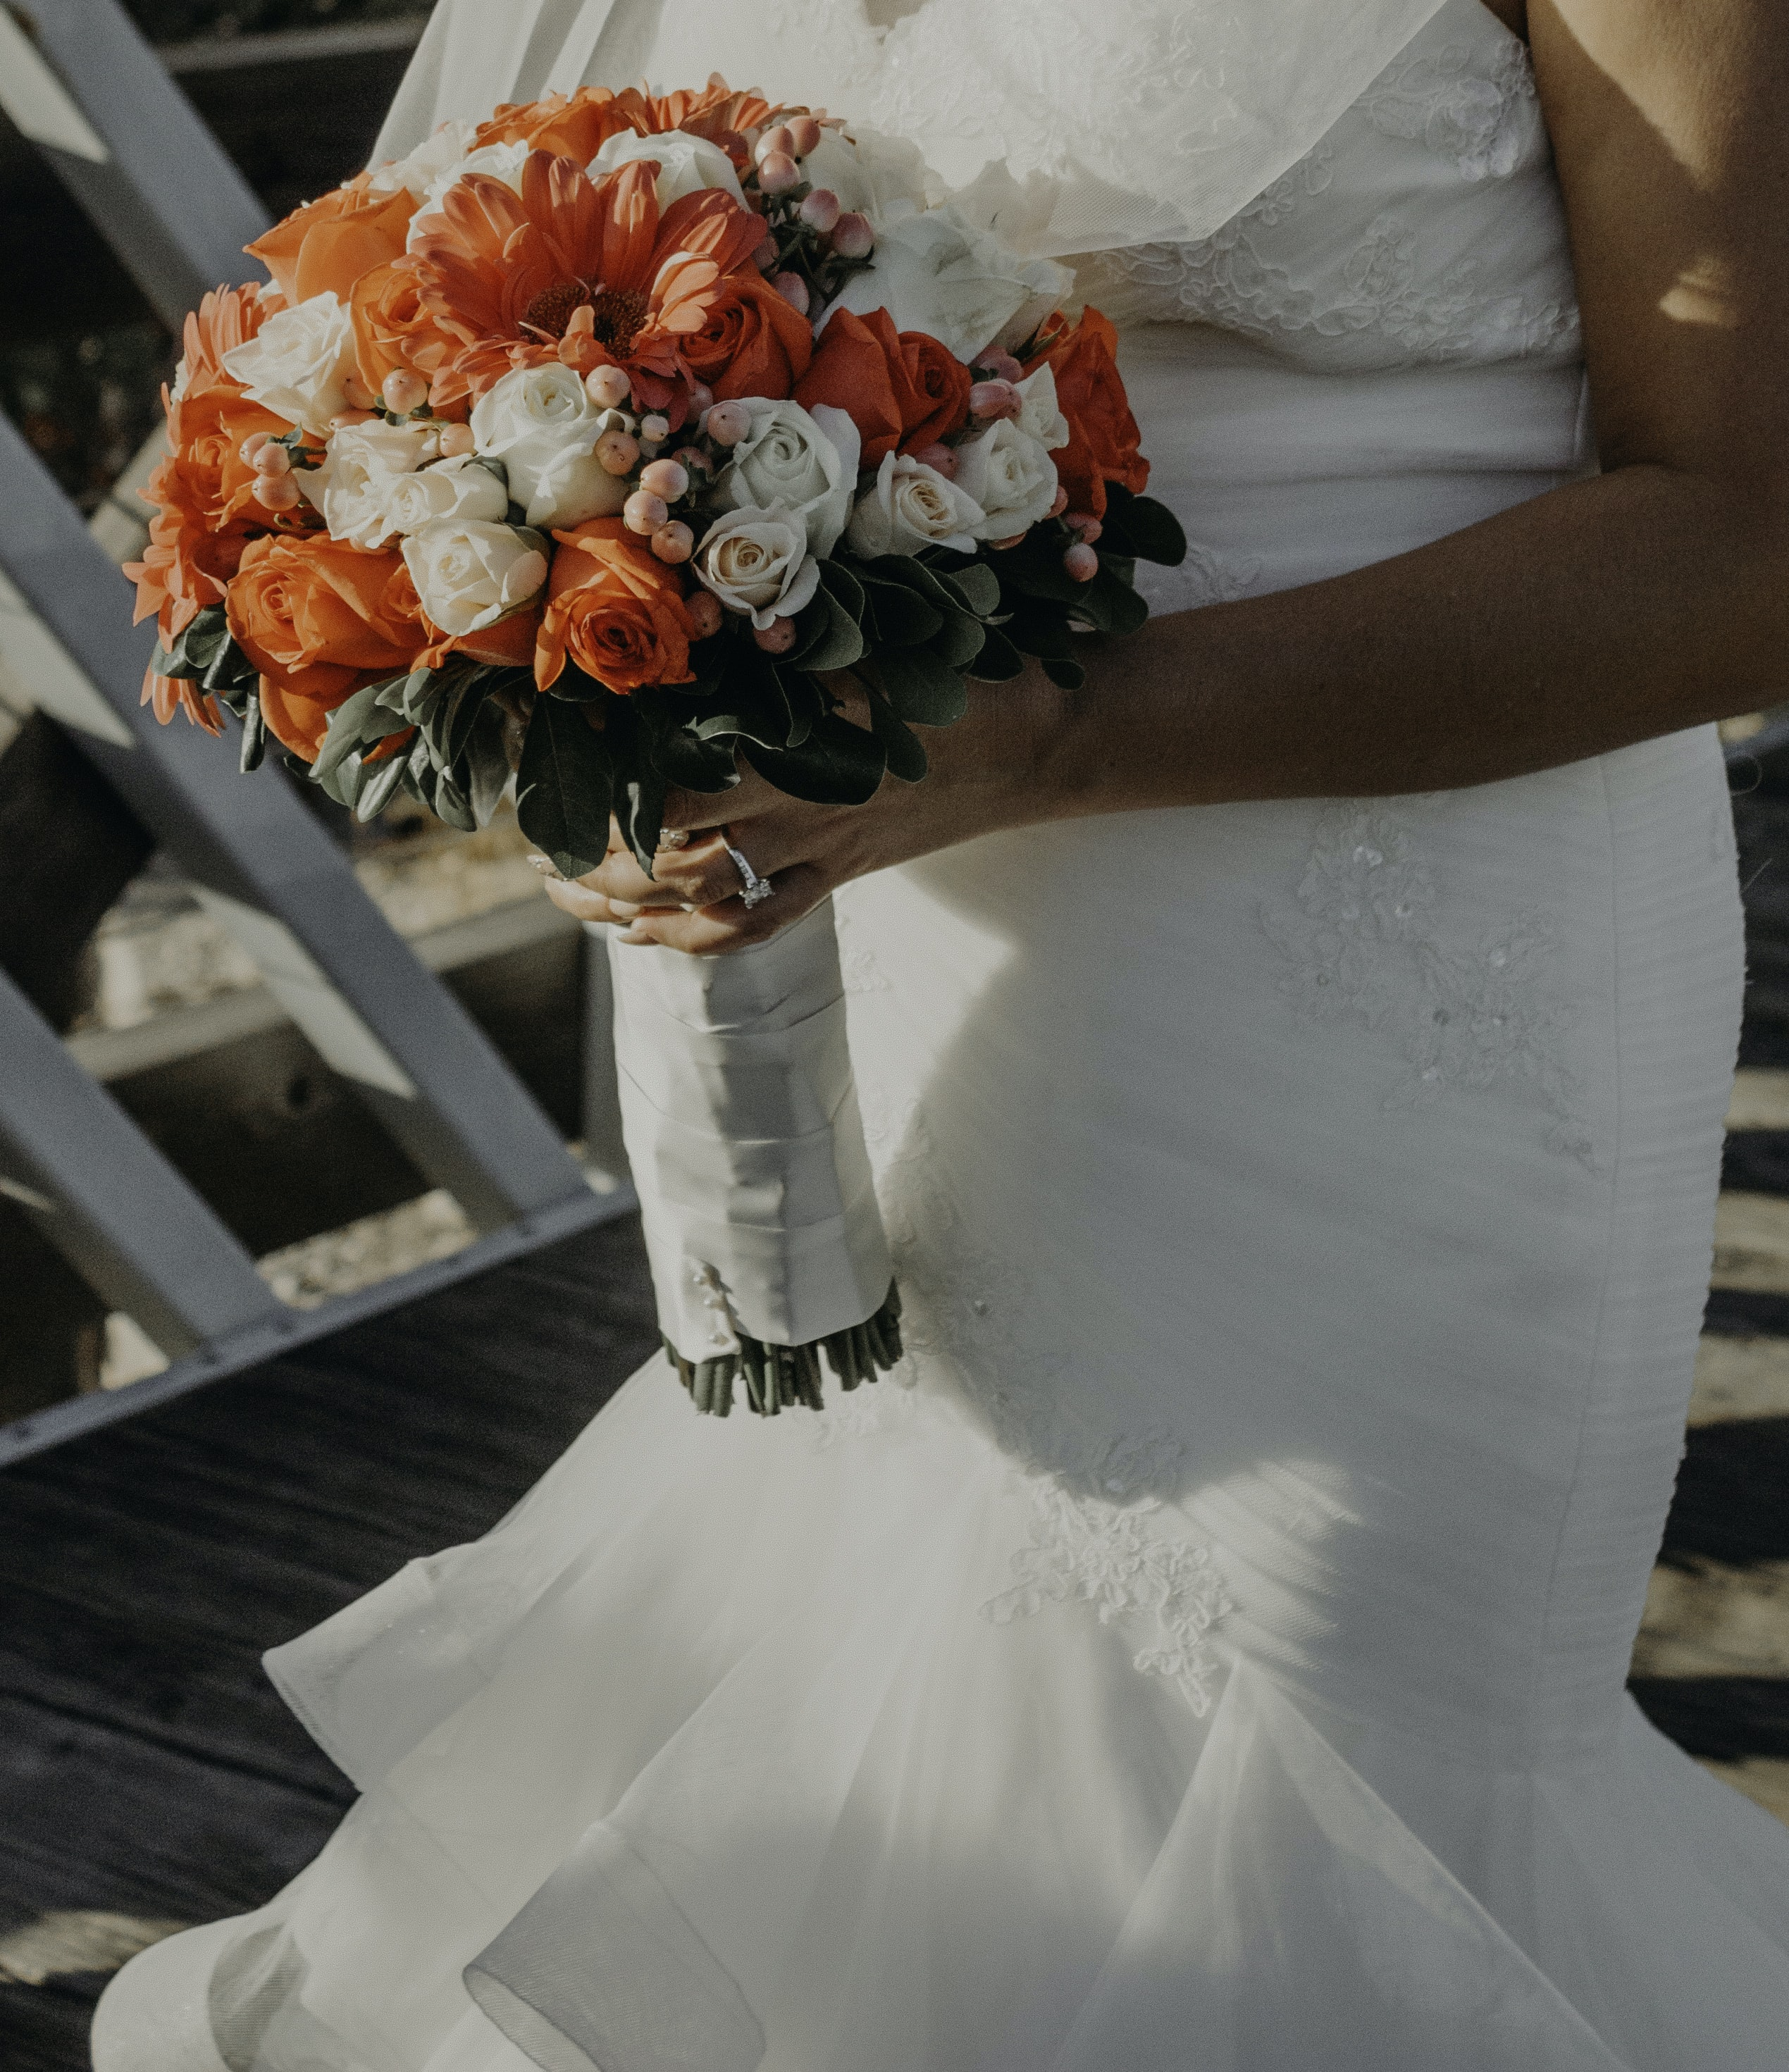 woman wearing white wedding gown holding red and white flower bouquet